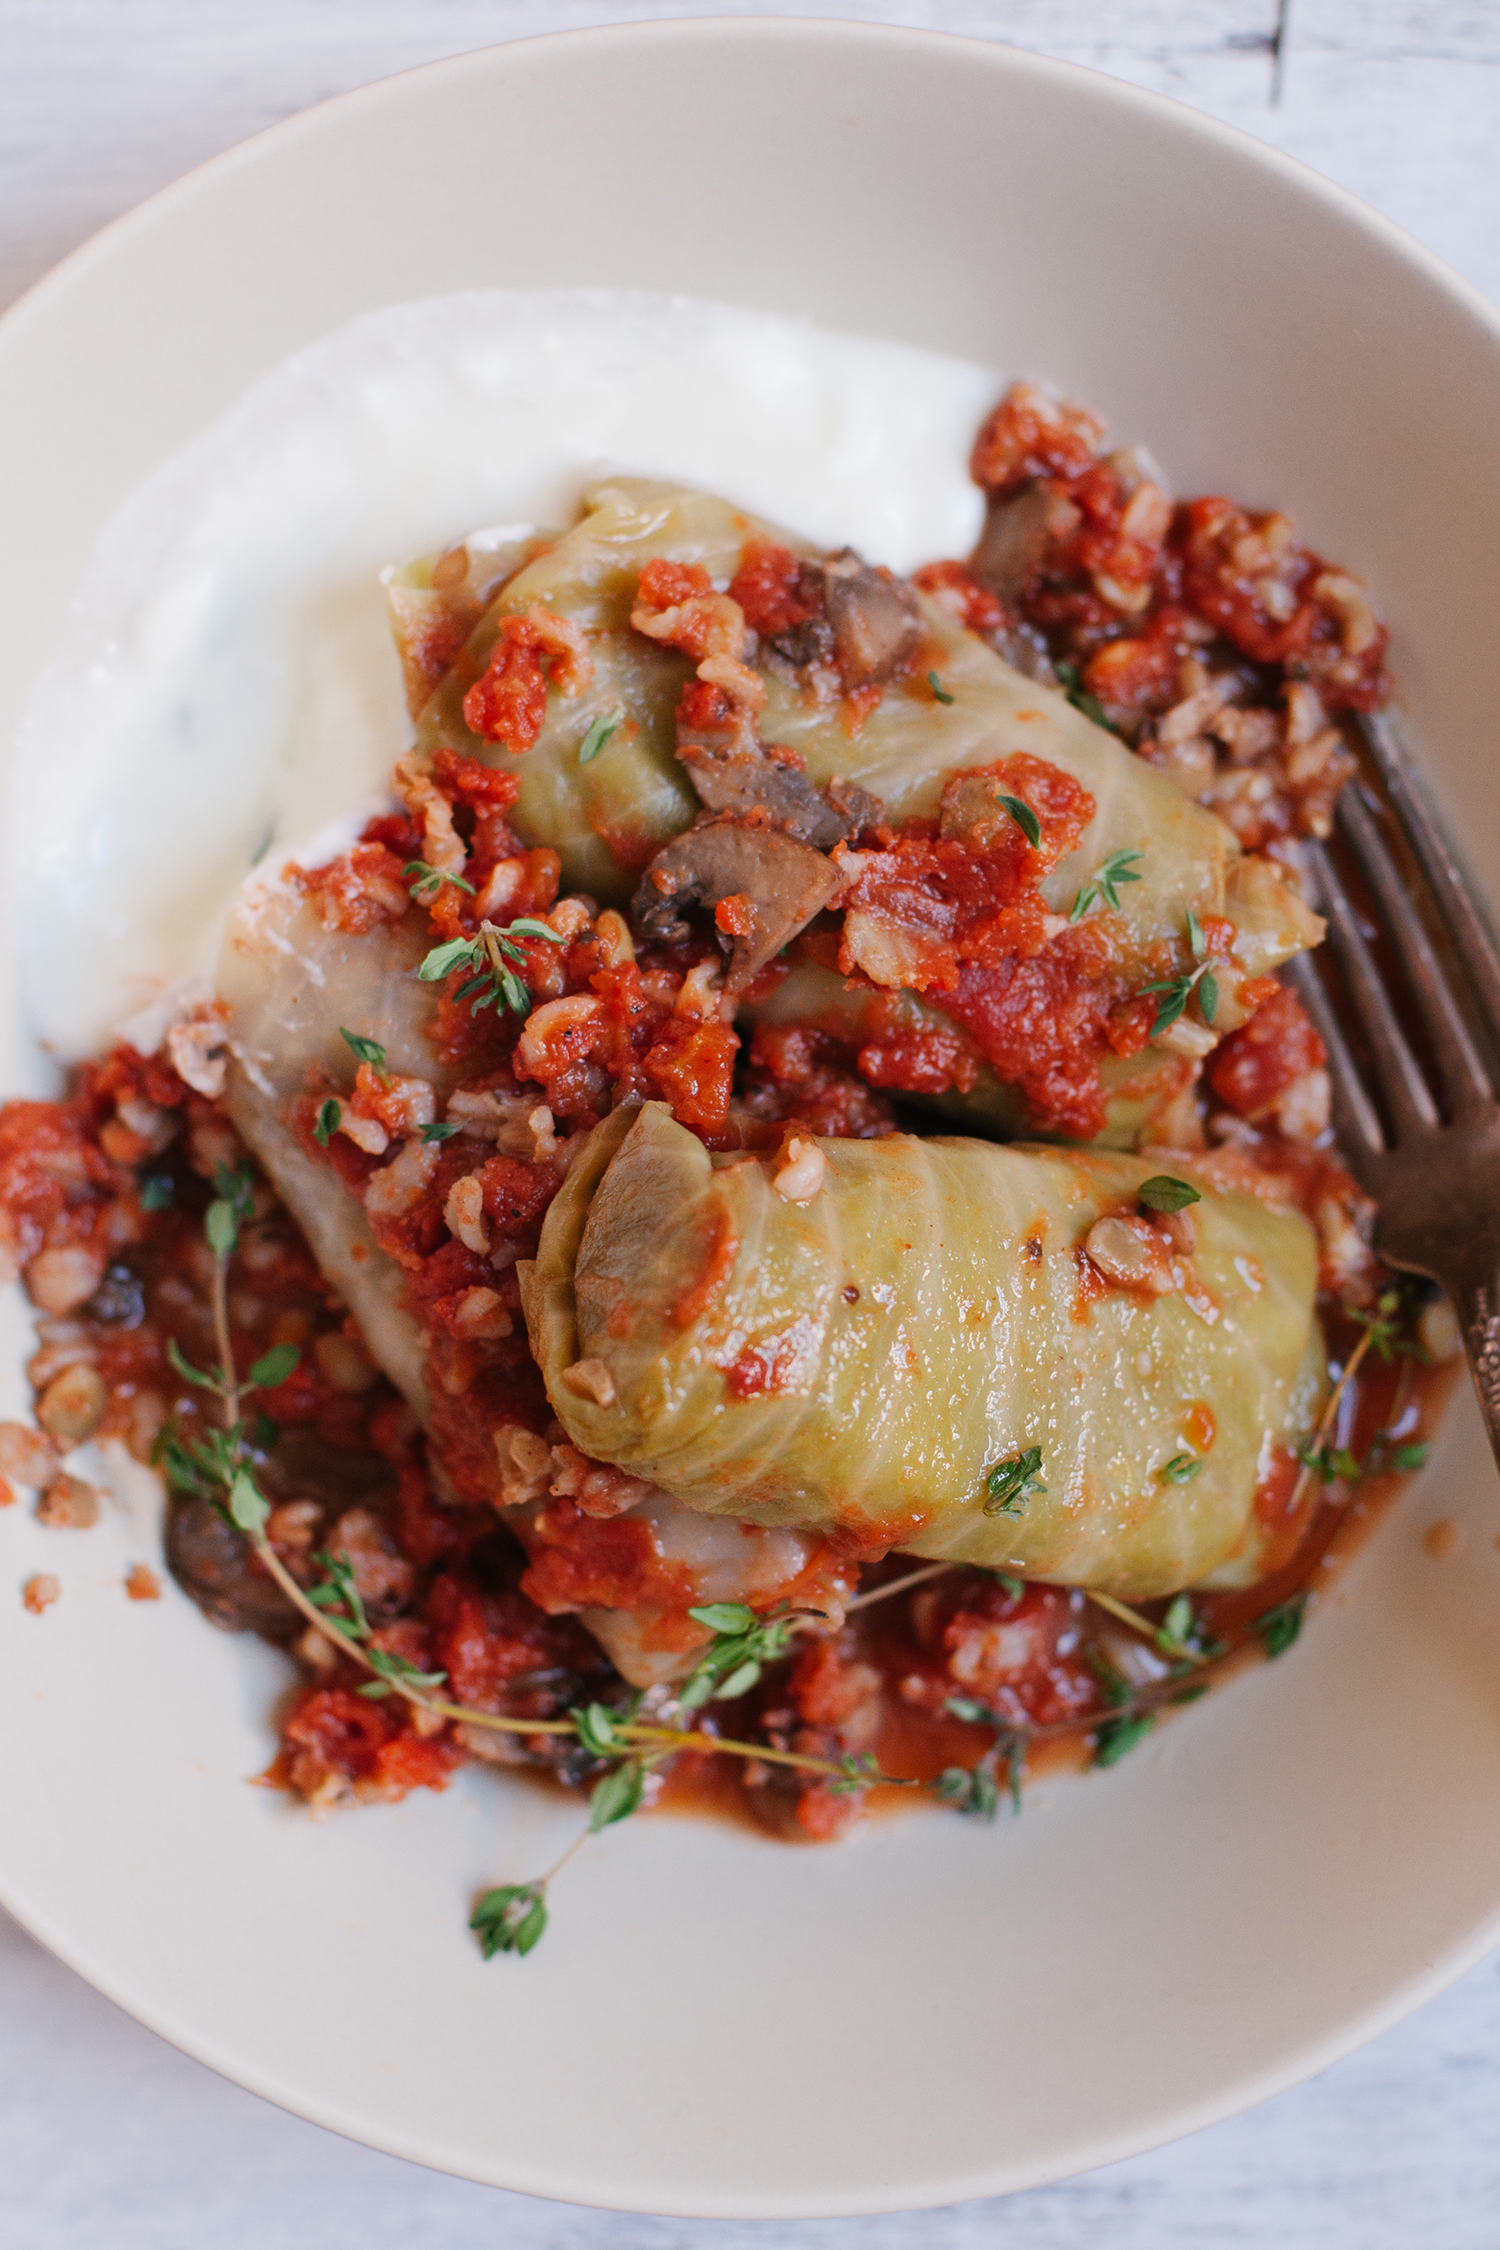 Spring Cabbage Rolls With Mushrooms, Lentils, Rice And Tomato Sauce from Simply Vibrant Cookbook